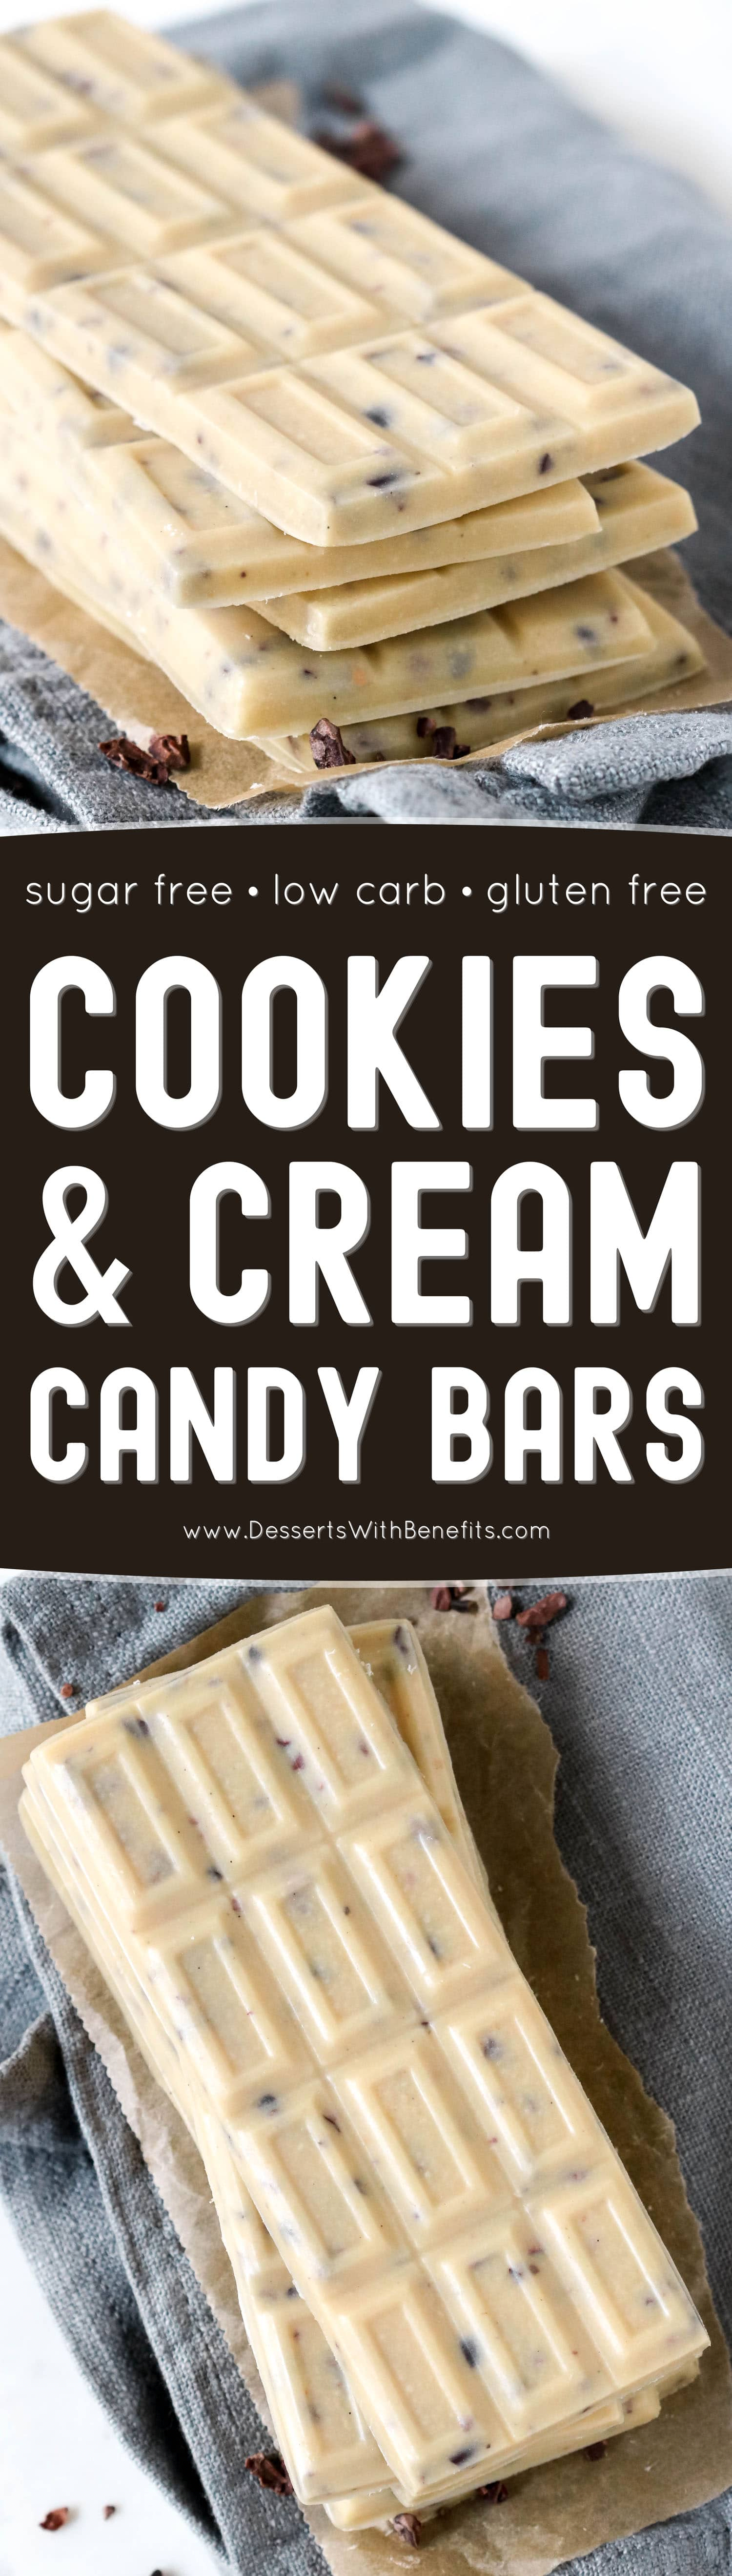 Just like the store-bought version, these from-scratch Cookies and Cream Candy Bars start with a smooth, creamy, and sweet white chocolate base, which is studded with crunchy chocolatey bits throughout. One bite and you'd never know these are sugar free, low carb, keto, and gluten free too!